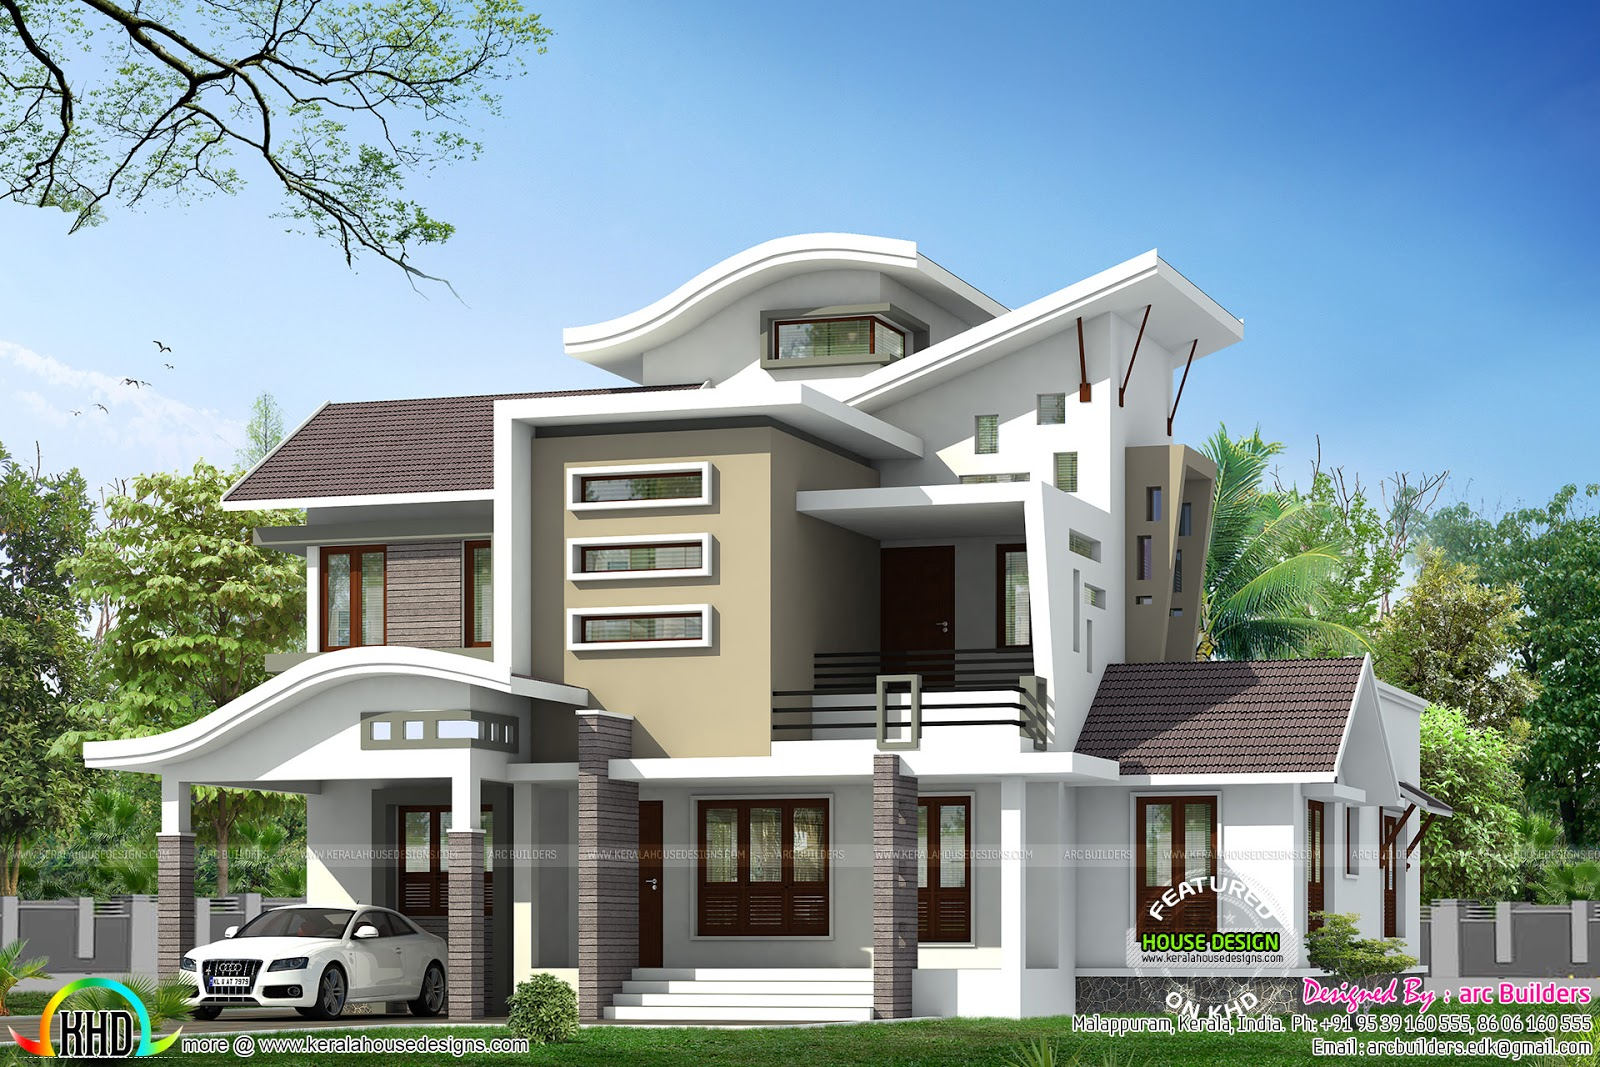 Unique ultra modern contemporary architecture kerala for Contemporary model house